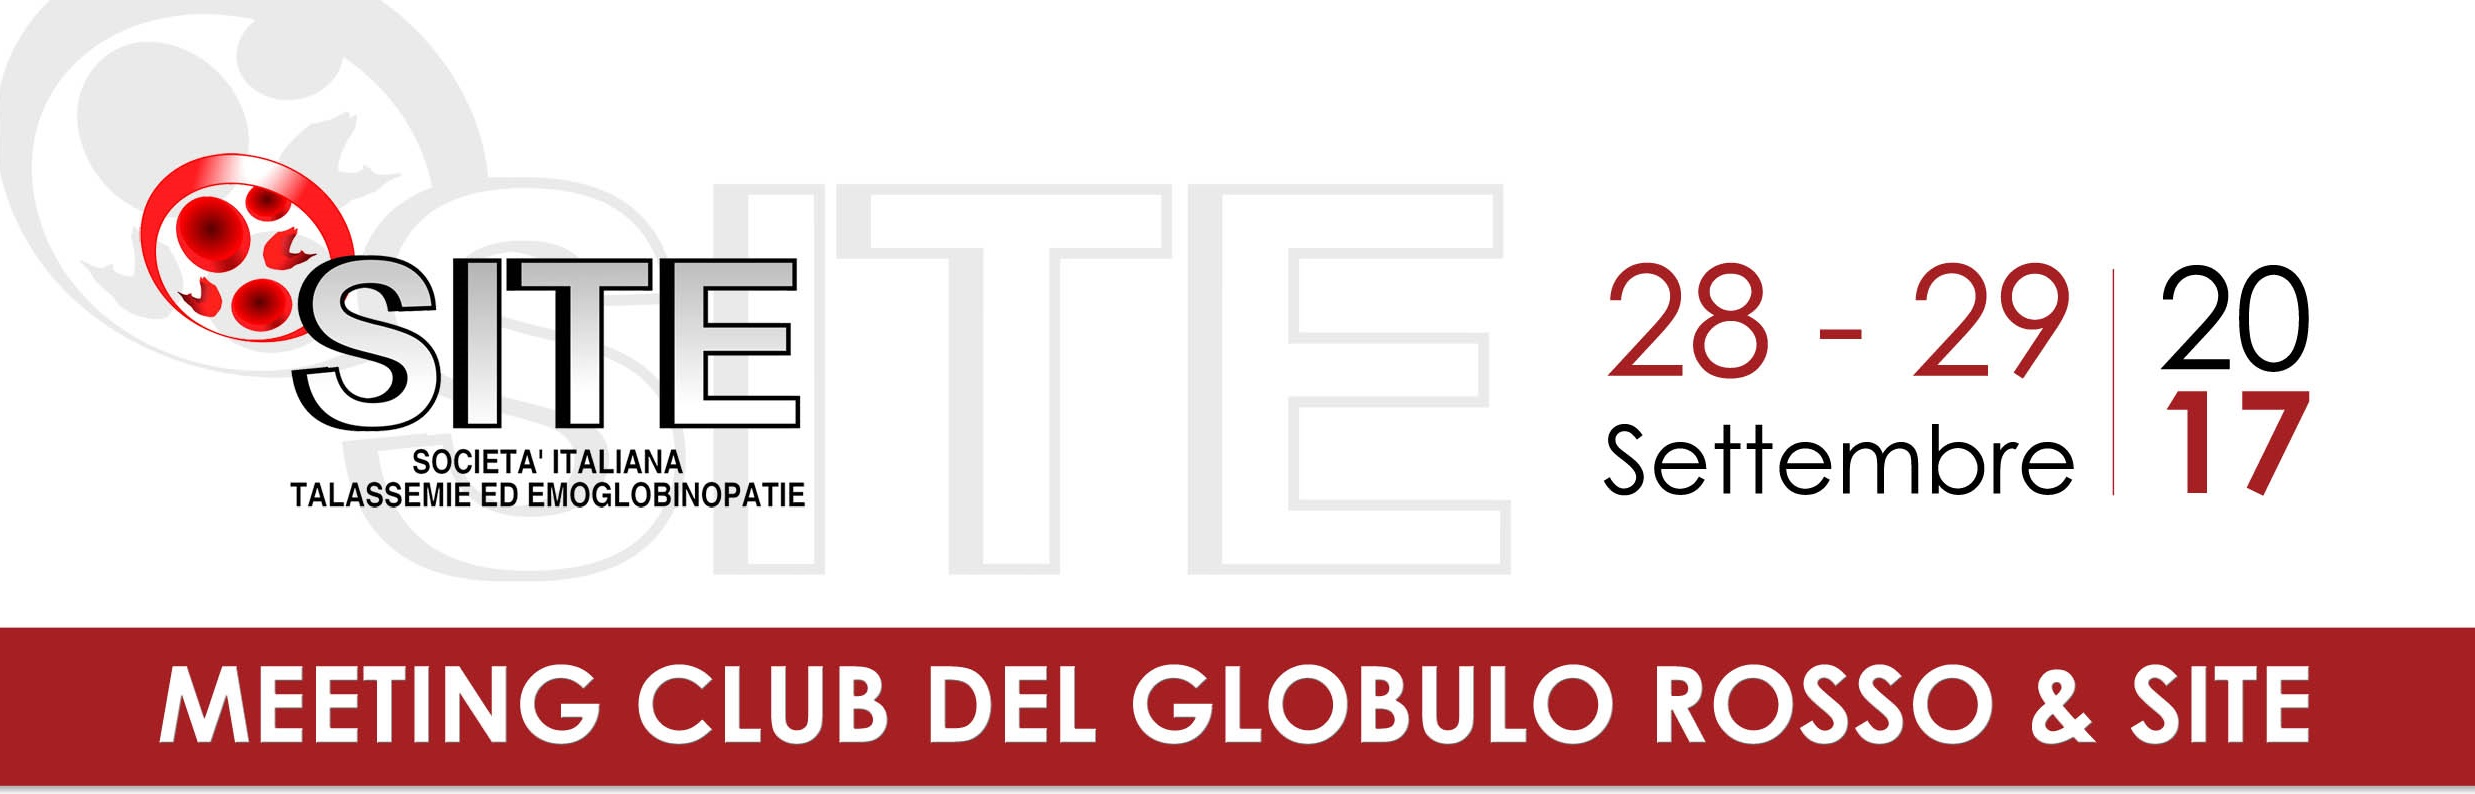 Meeting Club del Globulo Rosso & SITE